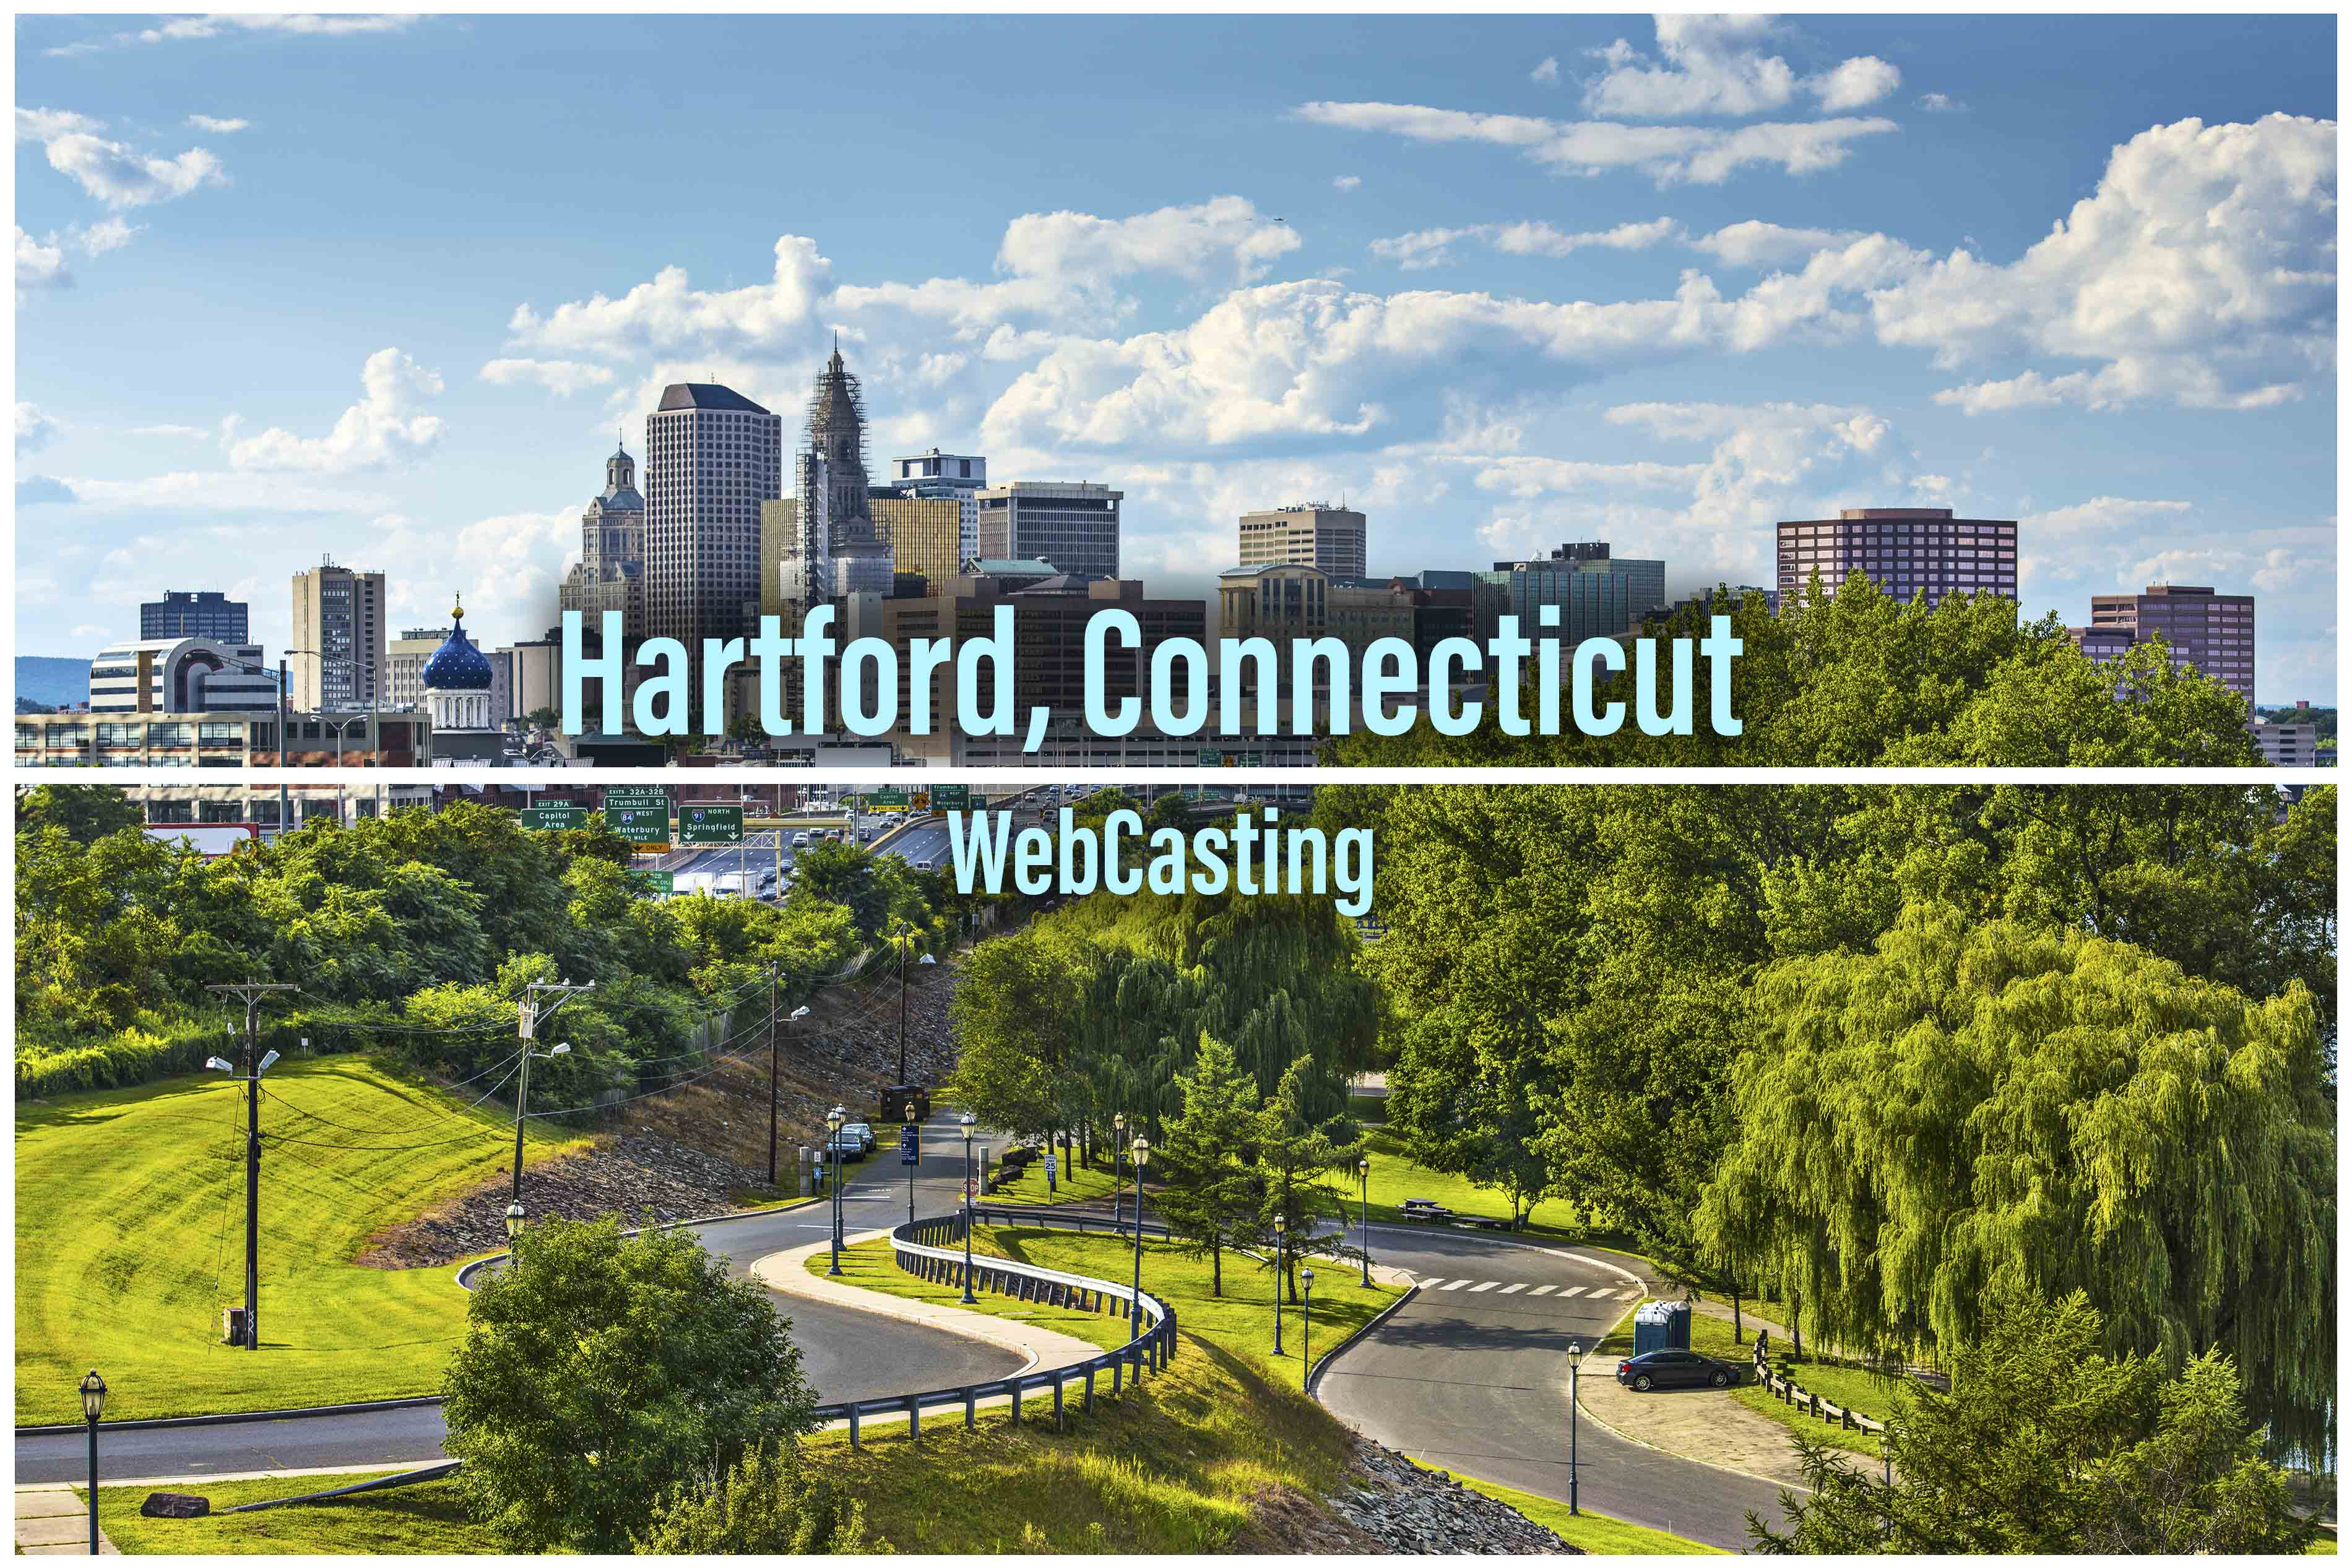 WebCasting Hartford skyline